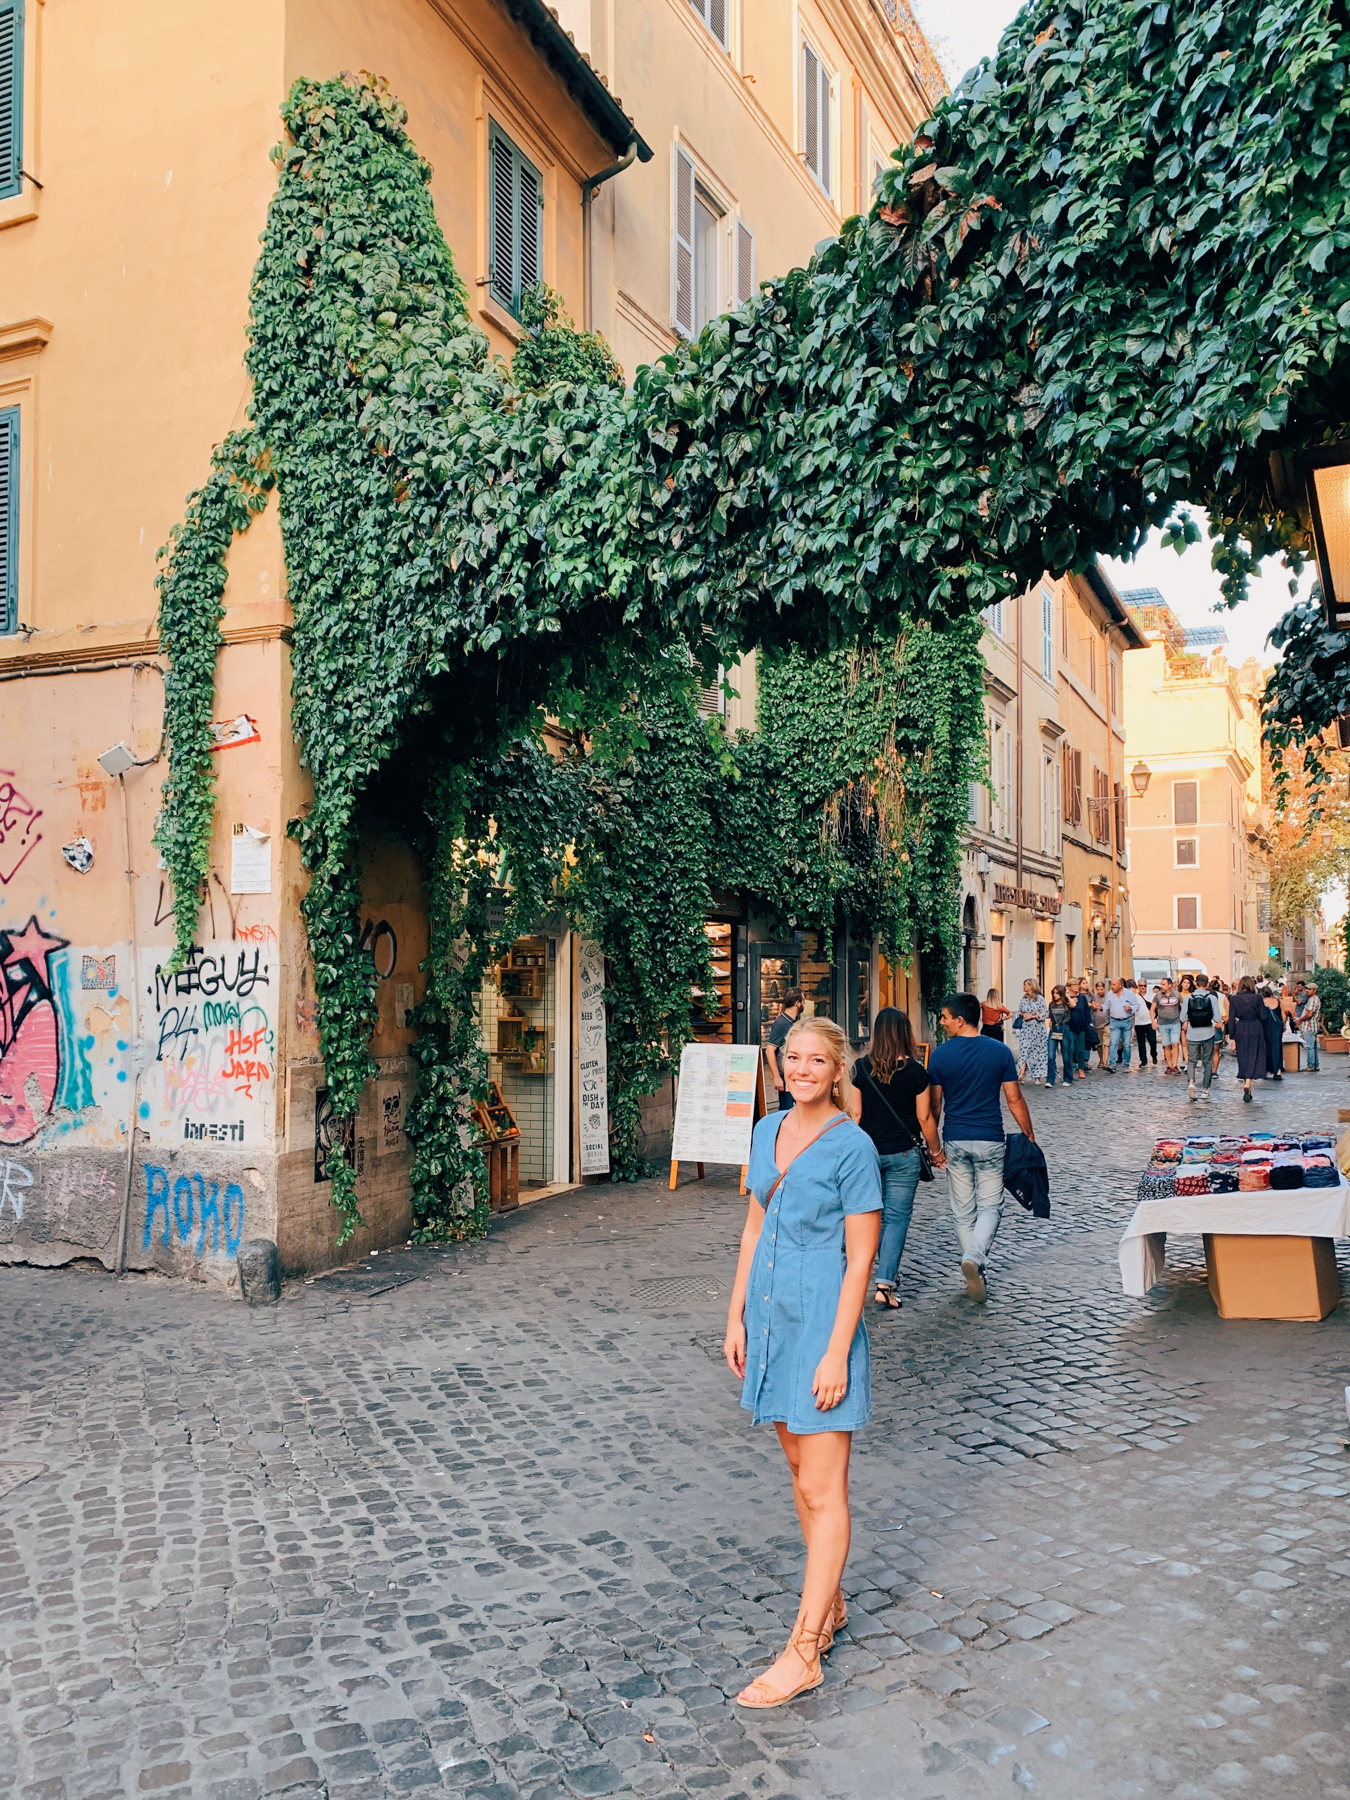 Walking around the Trastevere neighborhood, a perfect night out in Roma!